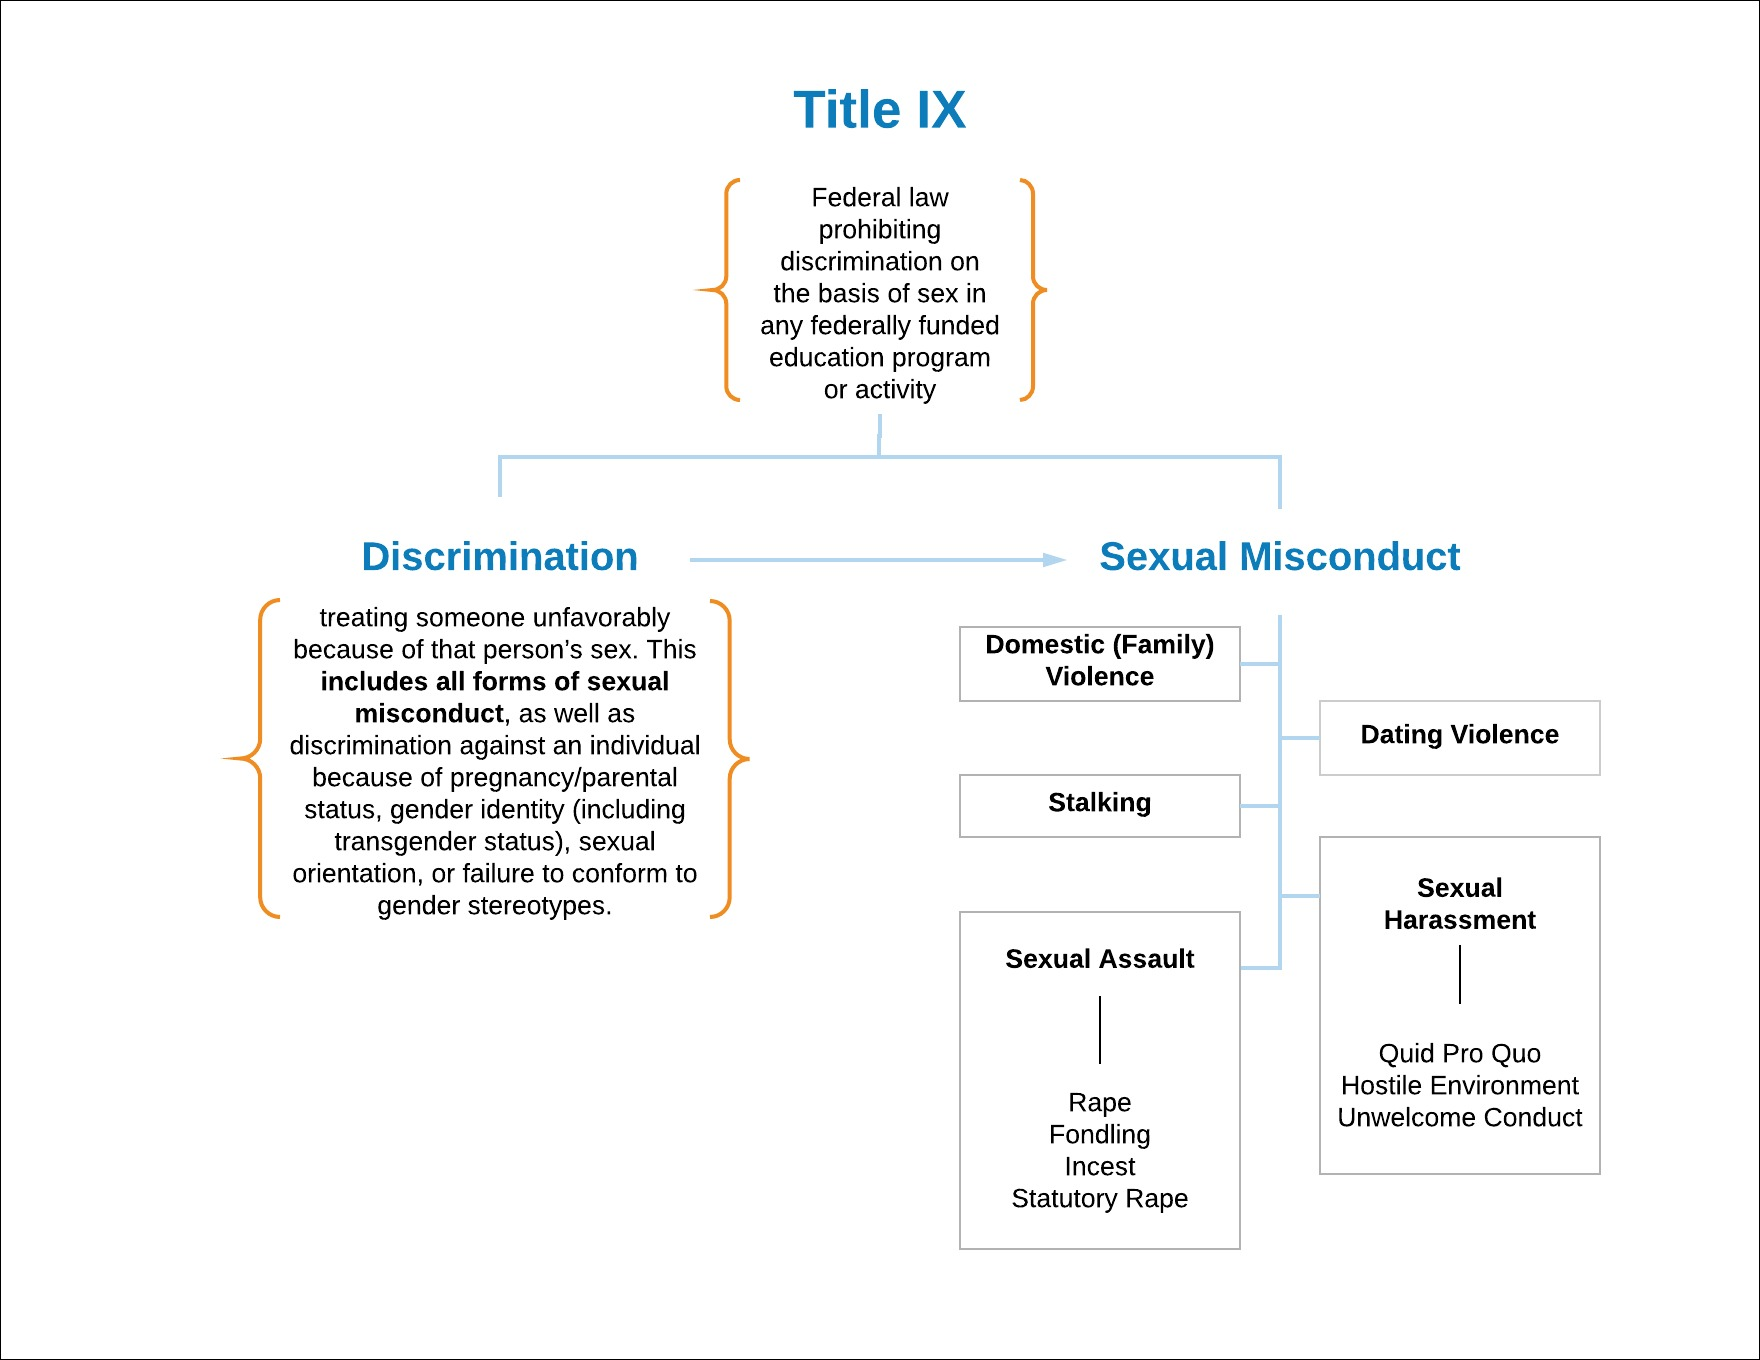 Sexual harassment definition title ix of the education